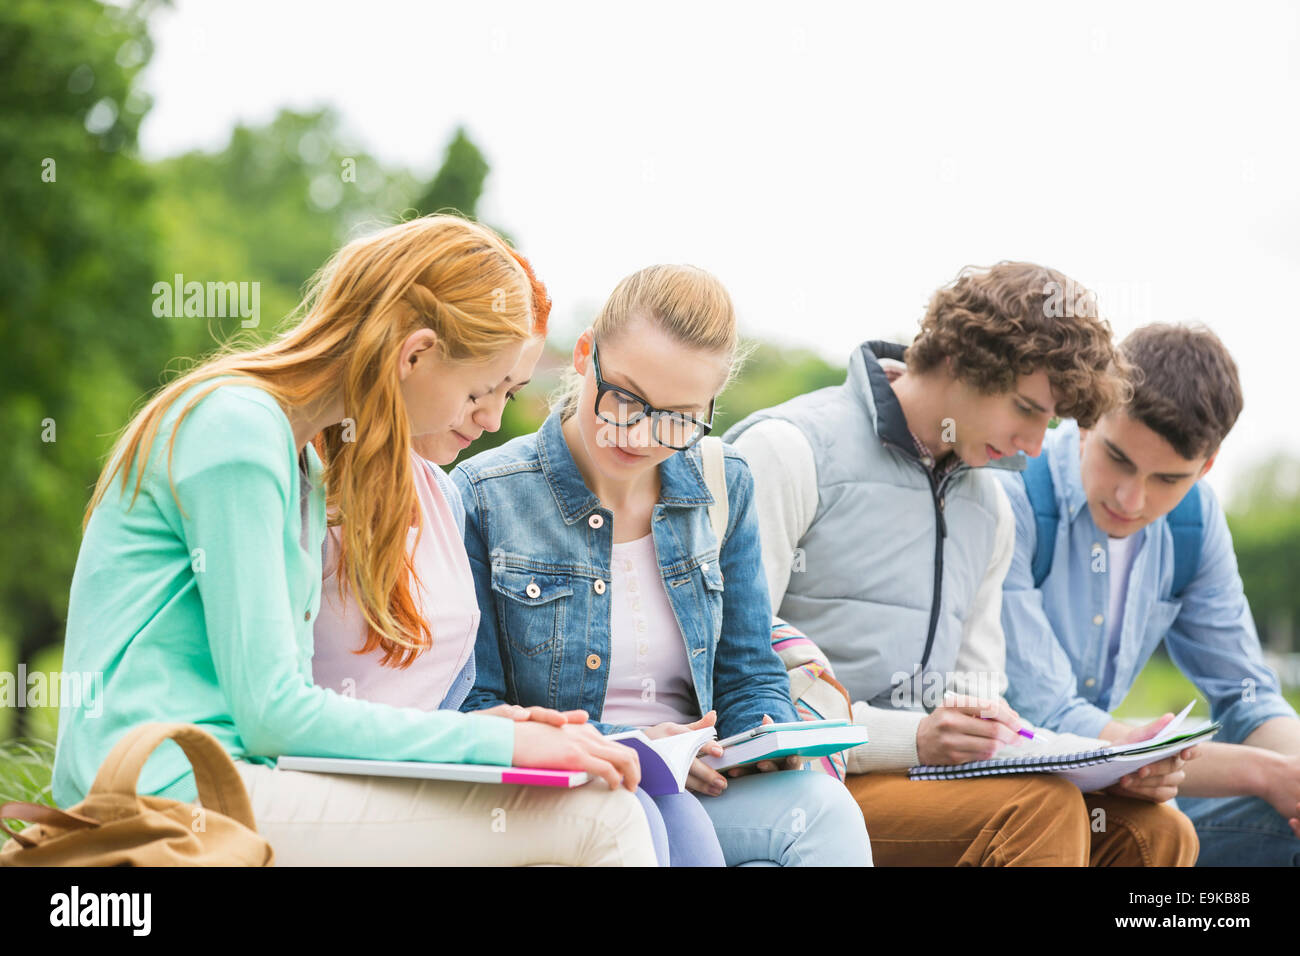 University students studying together in park - Stock Image